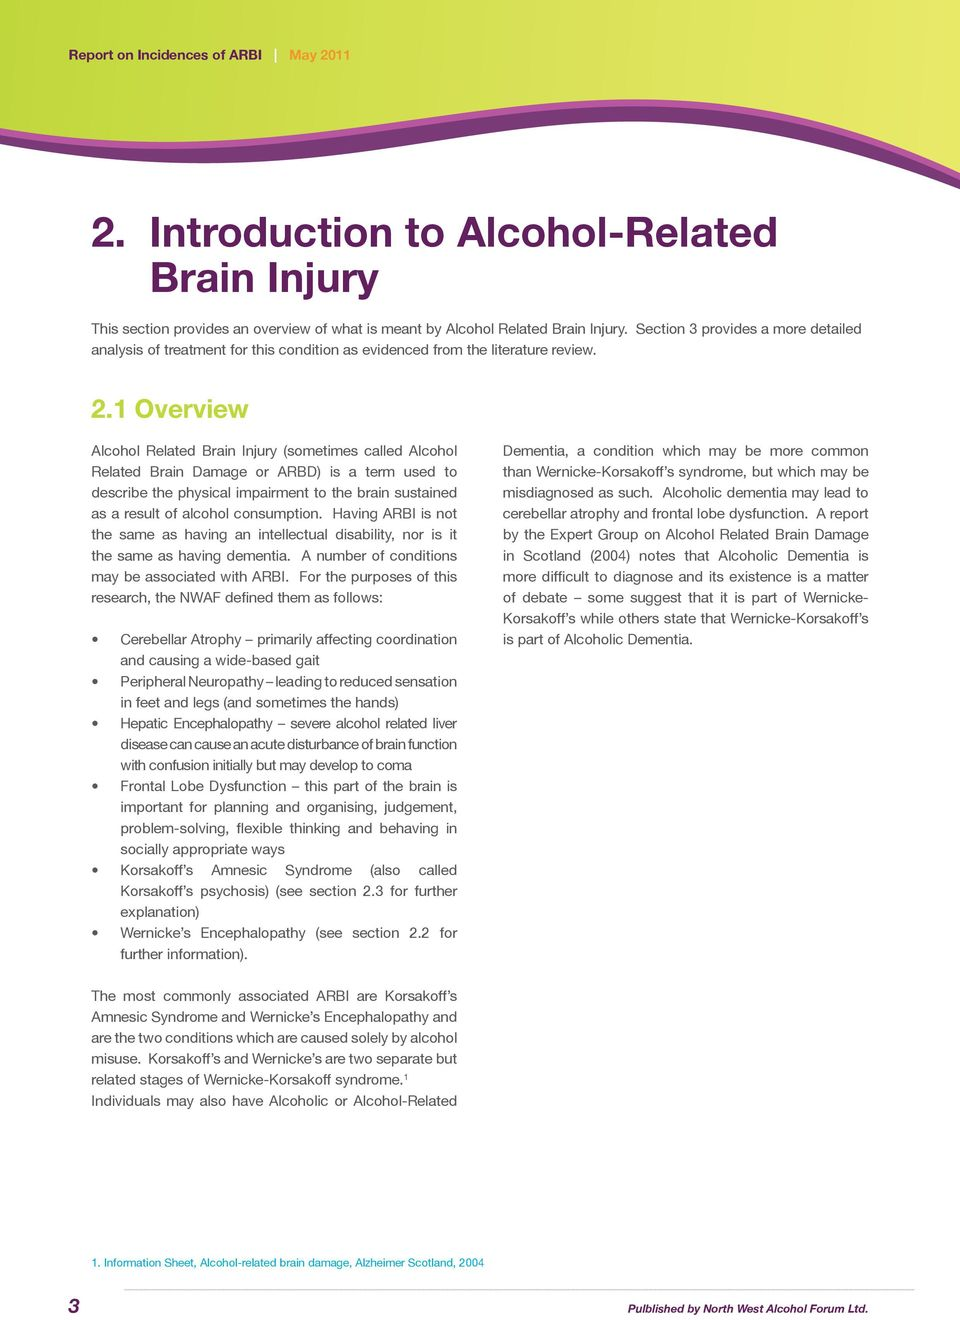 1 Overview Alcohol Related Brain Injury (sometimes called Alcohol Related Brain Damage or ARBD) is a term used to describe the physical impairment to the brain sustained as a result of alcohol